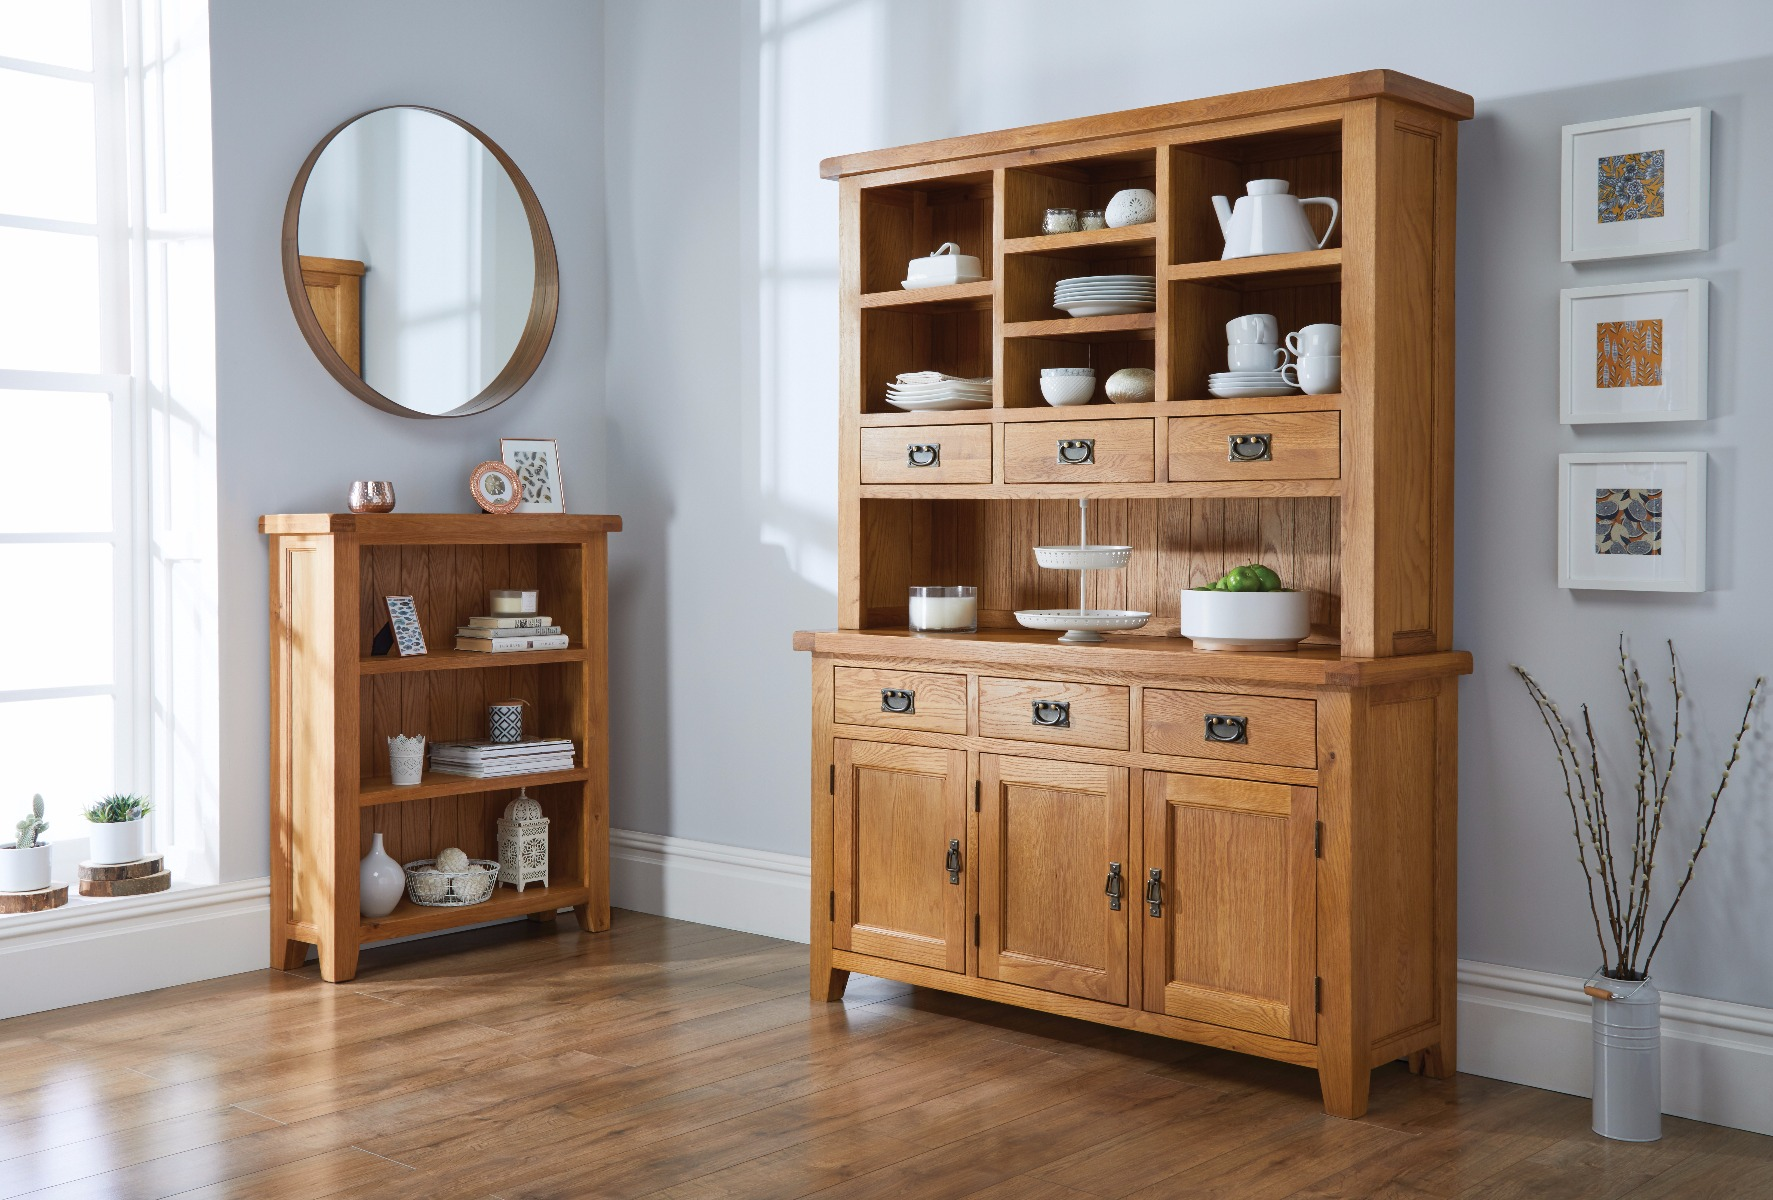 Large Rustic Oak Dresser Display Unit From TopFurniture